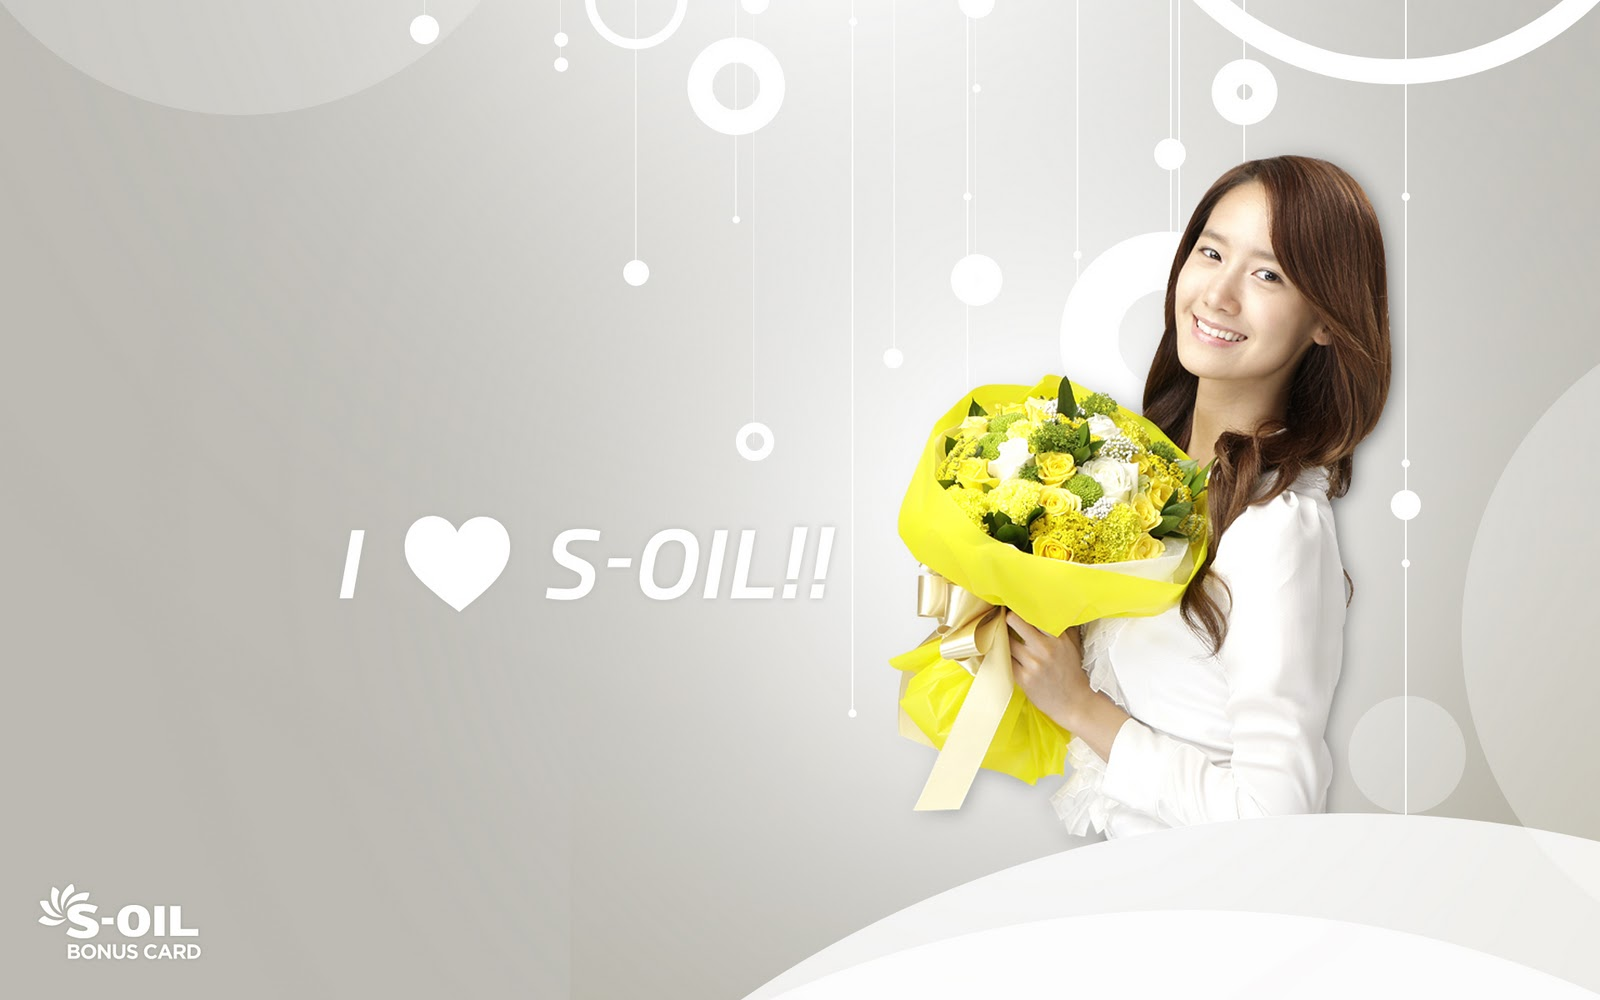 [PICS] Yoona Wallpaper Collection Yoona+Wallpaper+-1